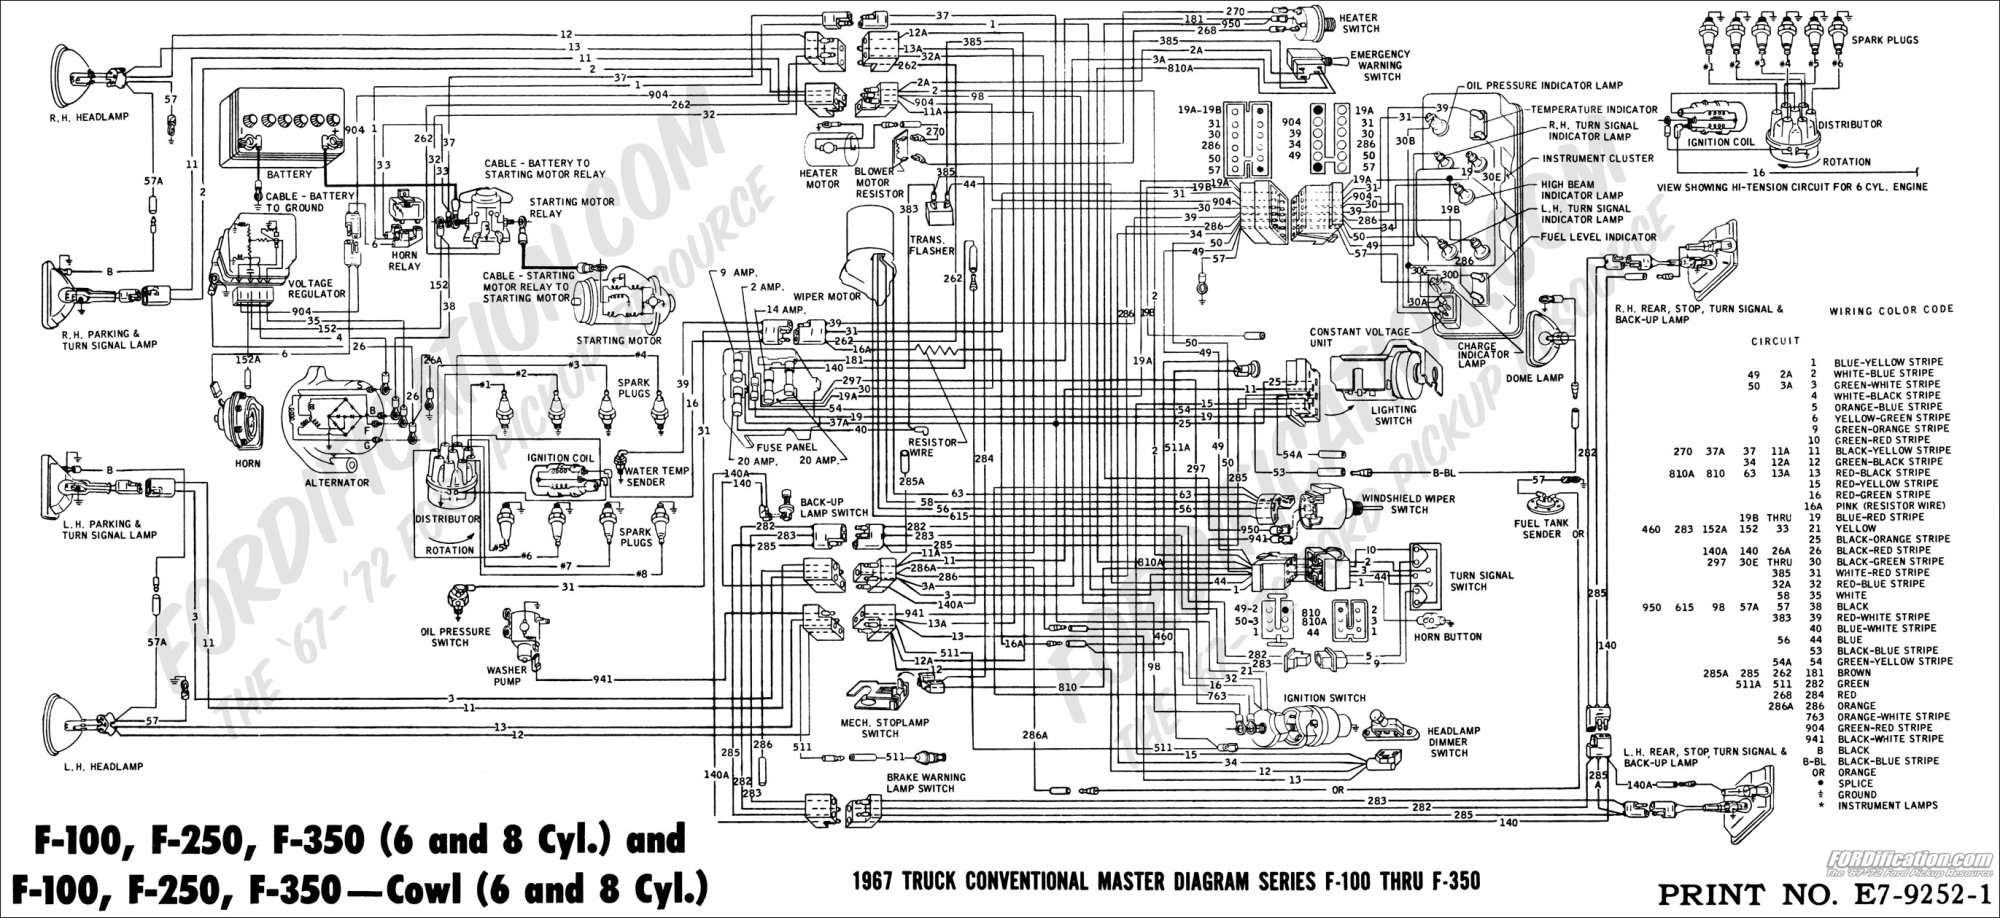 hight resolution of ford f 150 wiring diagram wiring diagram name 2013 ford f150 headlight wiring diagram 2013 ford f150 wiring diagram